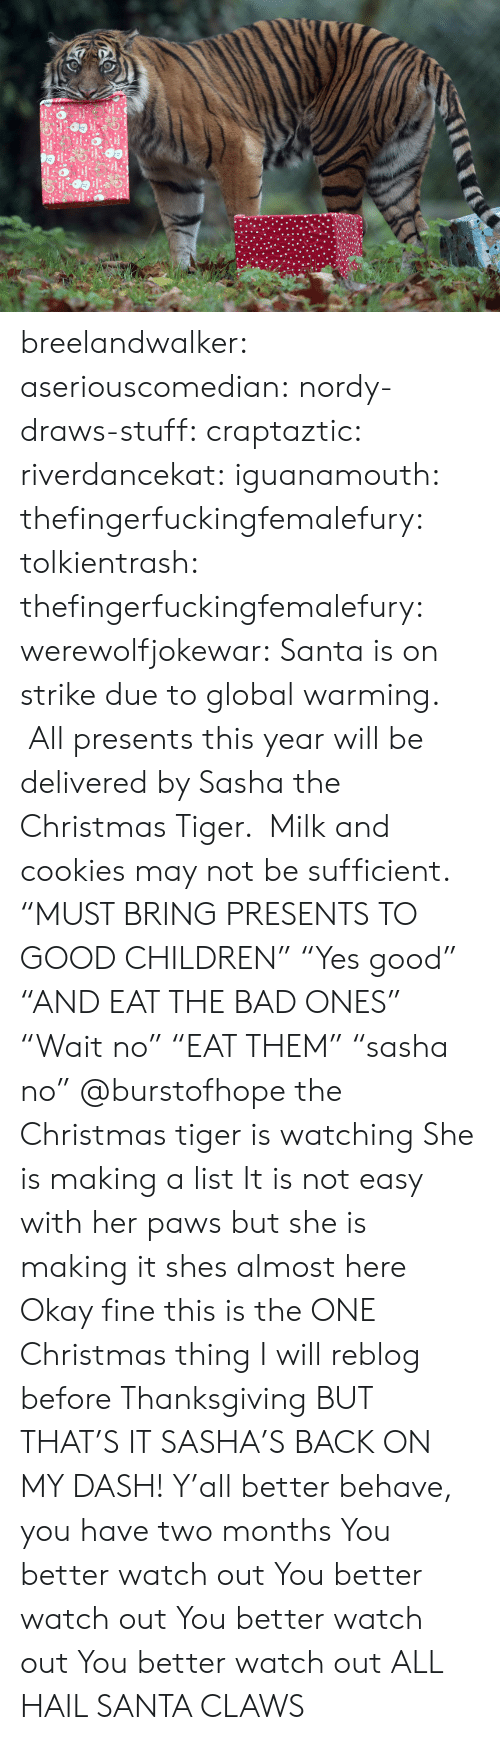 "Watch Out: breelandwalker:  aseriouscomedian:  nordy-draws-stuff:   craptaztic:  riverdancekat:  iguanamouth:  thefingerfuckingfemalefury:  tolkientrash:  thefingerfuckingfemalefury:  werewolfjokewar:  Santa is on strike due to global warming.  All presents this year will be delivered by Sasha the Christmas Tiger.  Milk and cookies may not be sufficient.  ""MUST BRING PRESENTS TO GOOD CHILDREN"" ""Yes good"" ""AND EAT THE BAD ONES""  ""Wait no"" ""EAT THEM"" ""sasha no""   @burstofhope the Christmas tiger is watching  She is making a list  It is not easy with her paws but she is making it   shes almost here   Okay fine this is the ONE Christmas thing I will reblog before Thanksgiving BUT THAT'S IT  SASHA'S BACK ON MY DASH!  Y'all better behave, you have two months   You better watch out You better watch out You better watch out You better watch out  ALL HAIL SANTA CLAWS"